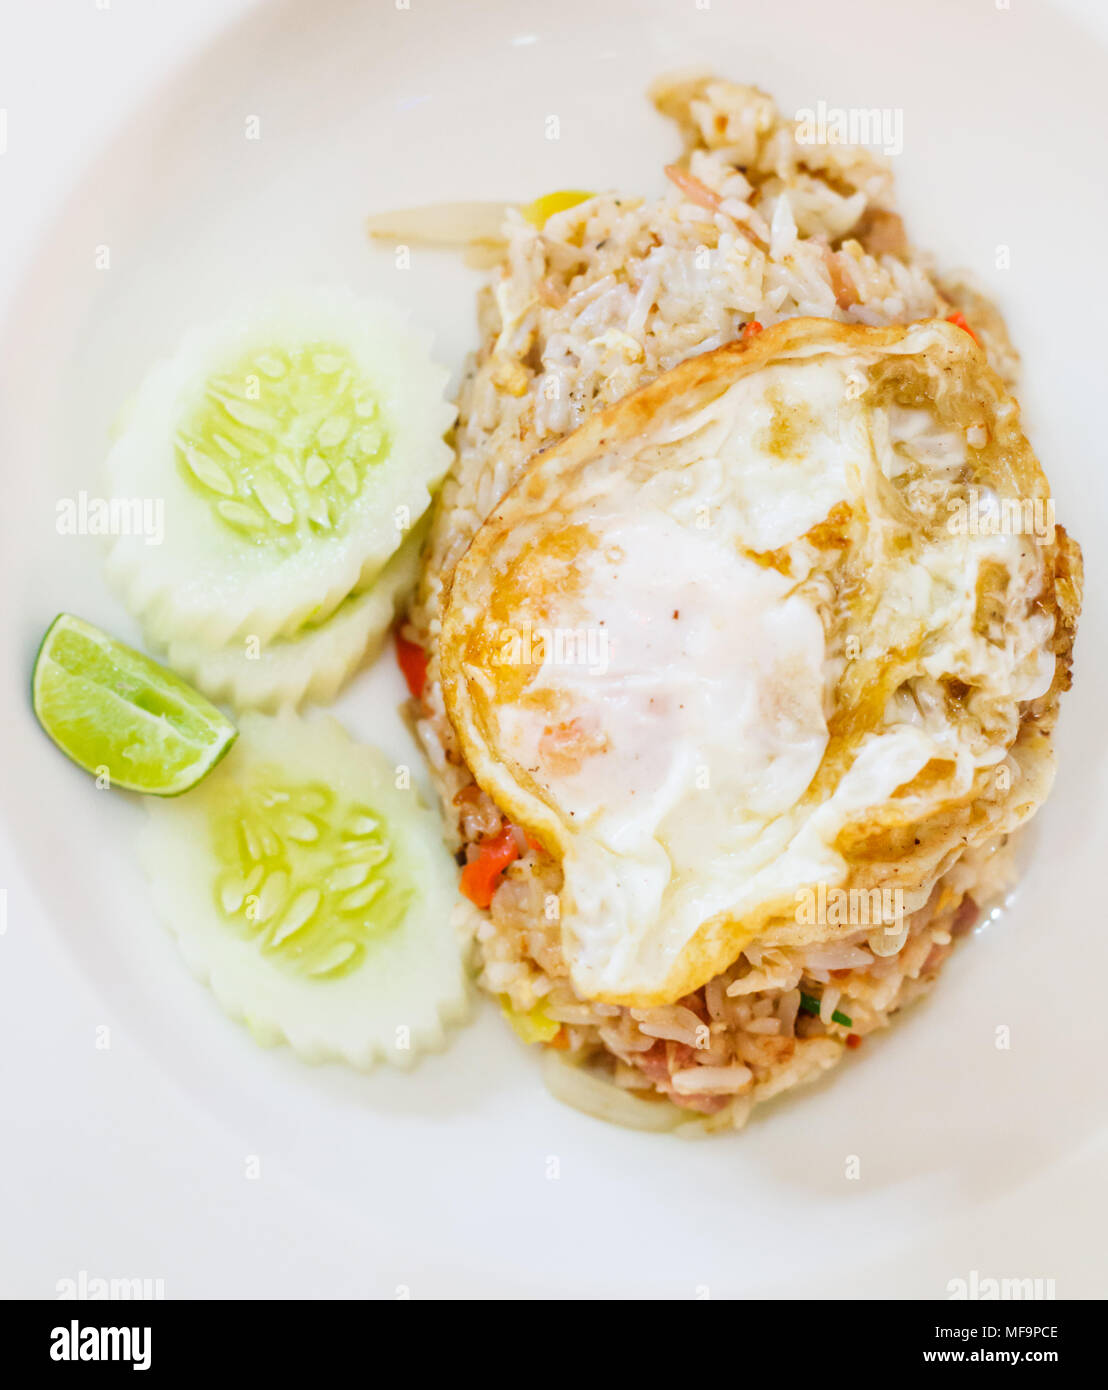 selective focus close up traditional Thai Asian cuisine food menu: delicious Thai fermented pork fried rice with fried egg on top garnished with lemon - Stock Image